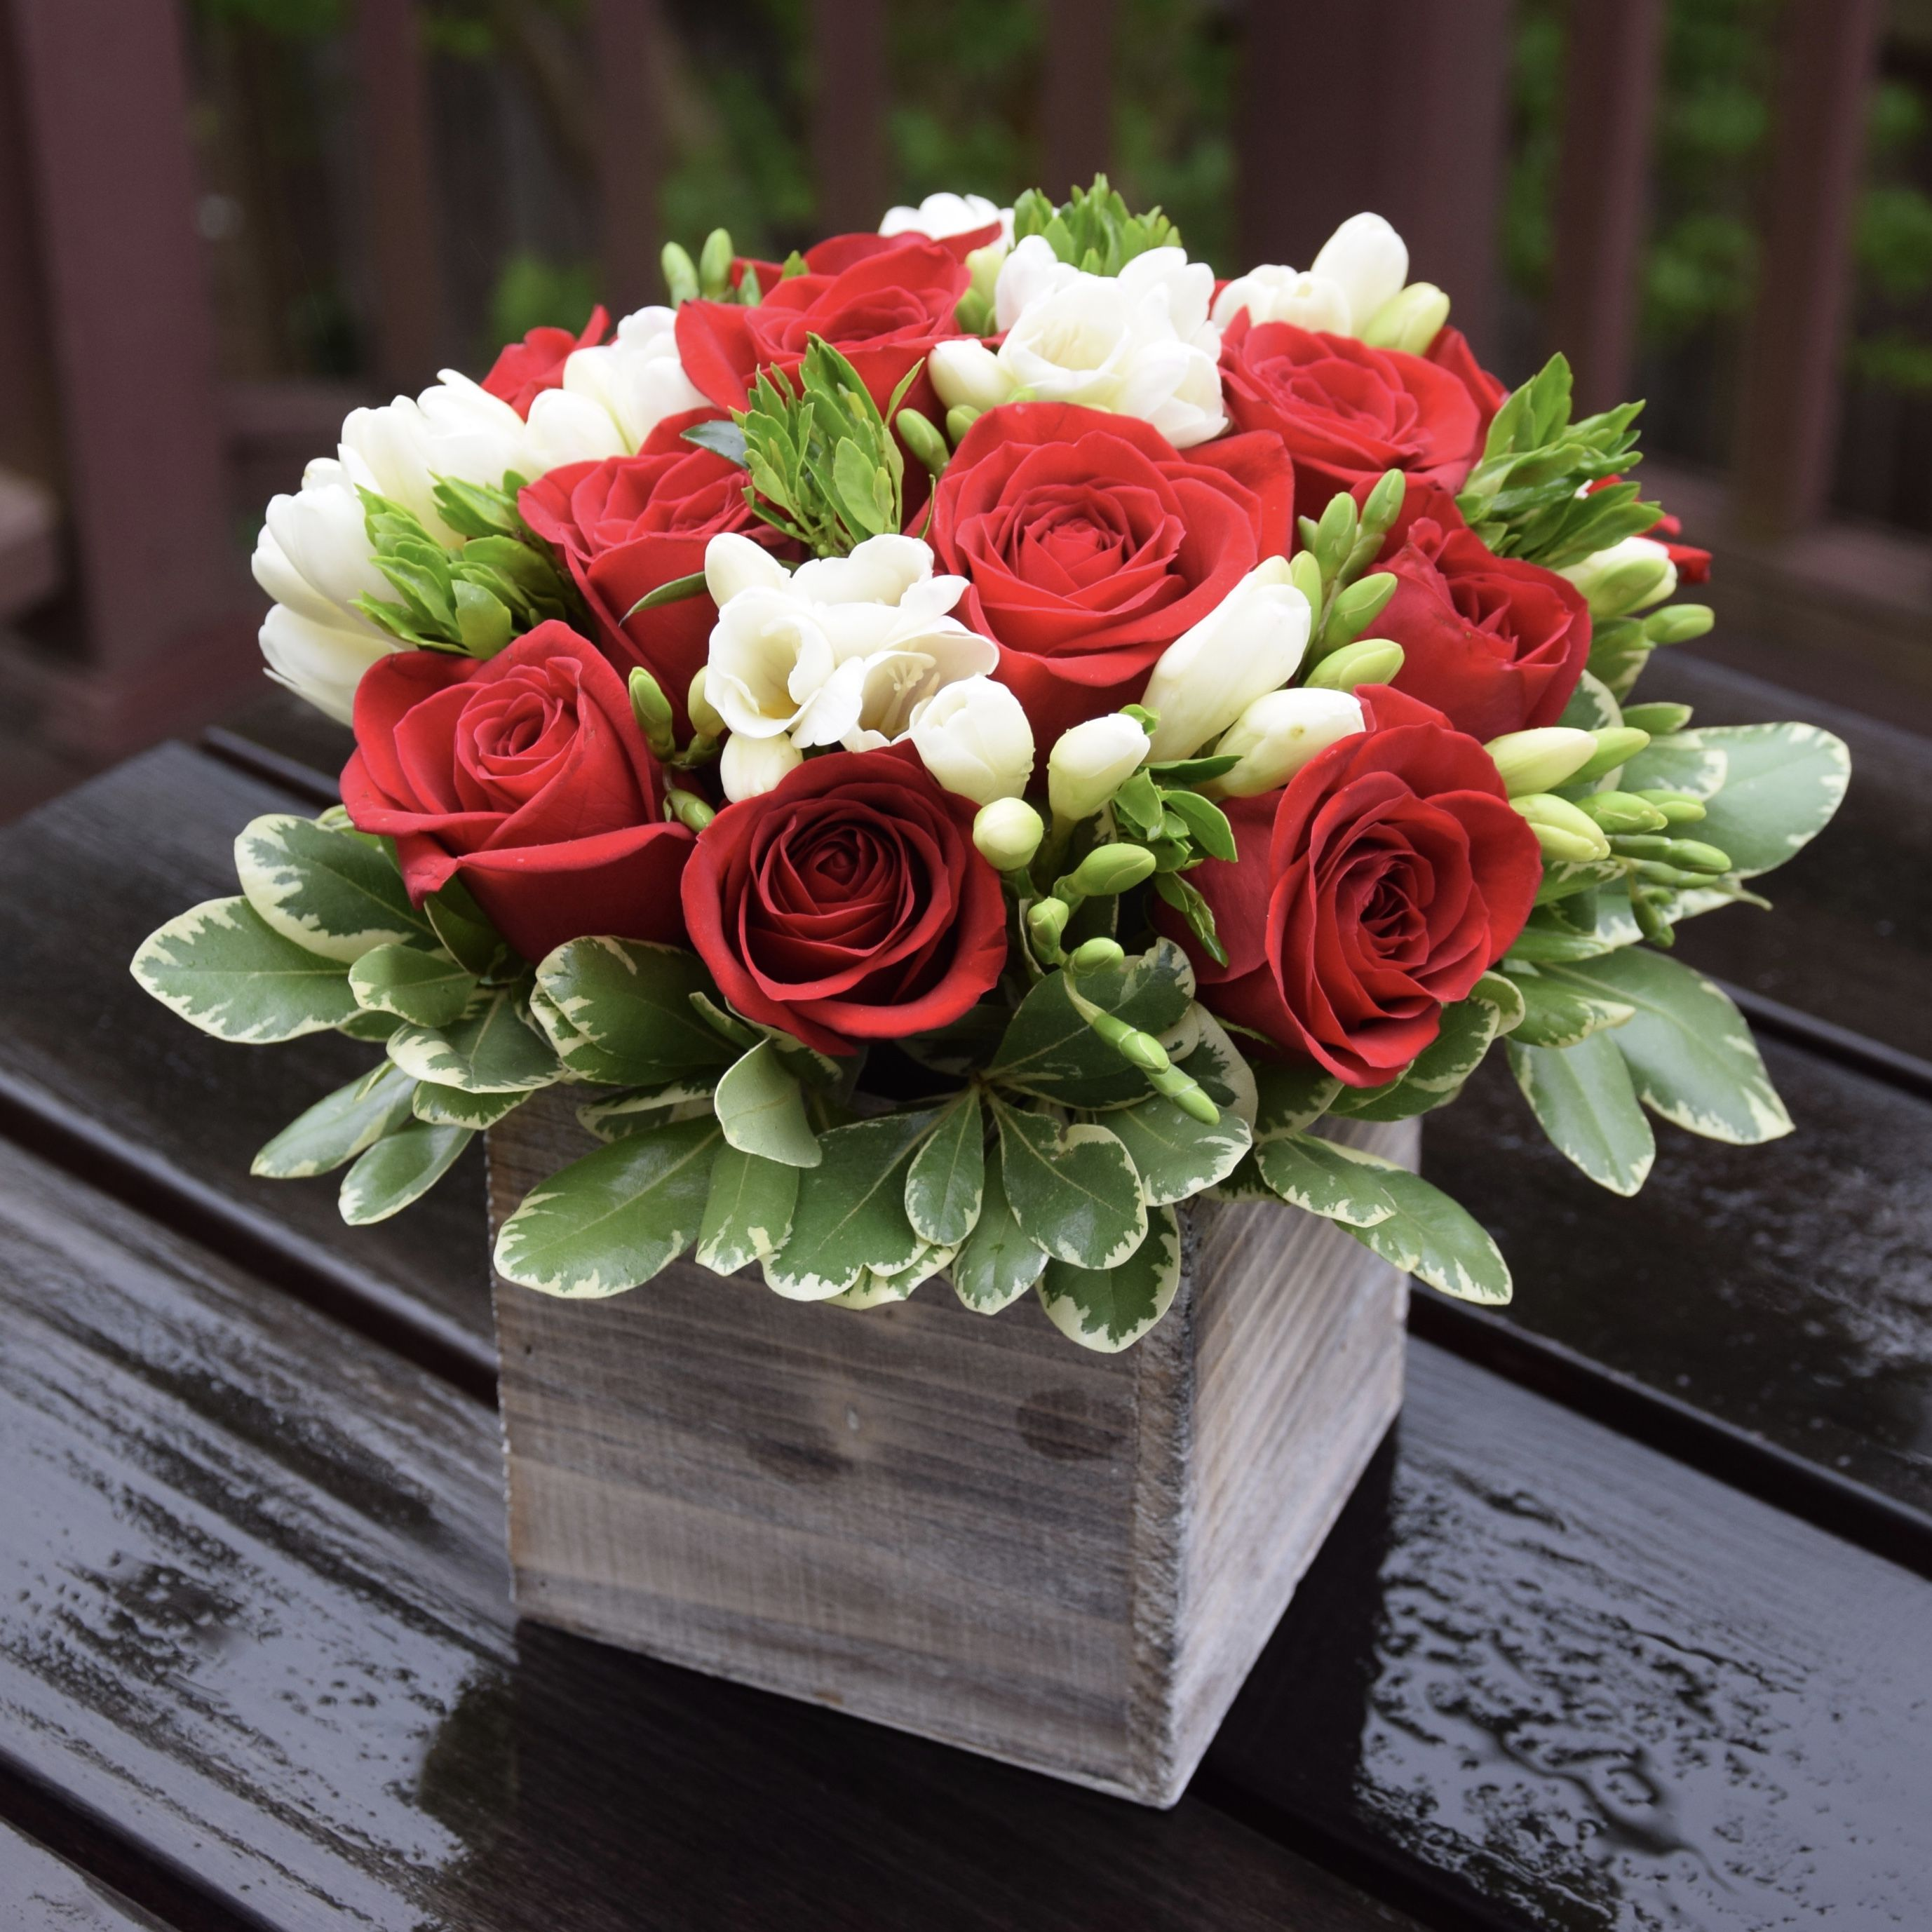 Flower Bouquet In A Rustic Container With Roses Freesias And Pittosporum Fresh Flowers Arrangements Flower Arrangements Floral Arrangements